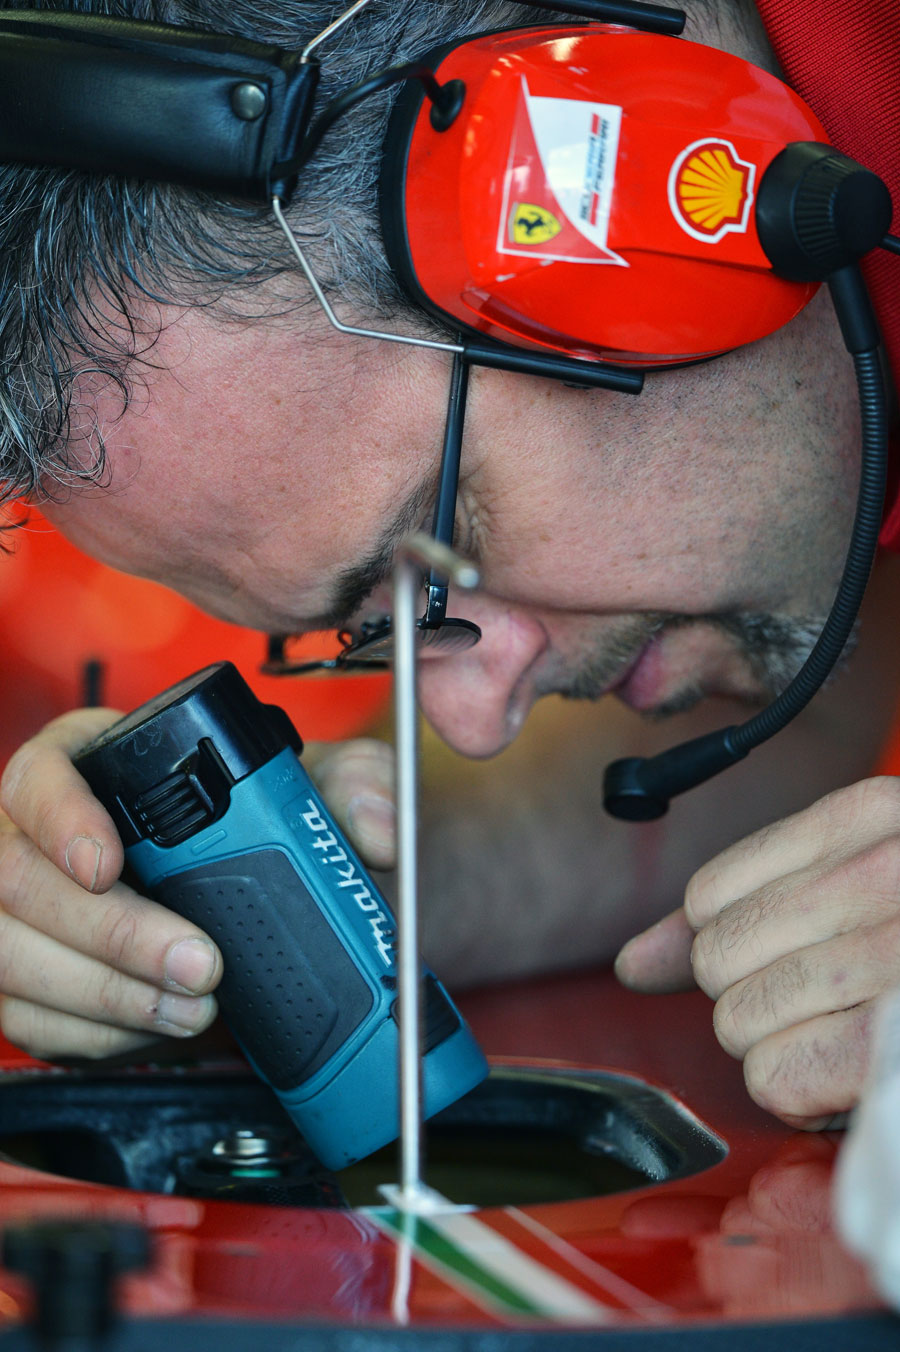 A Ferrari mechanic hard at work